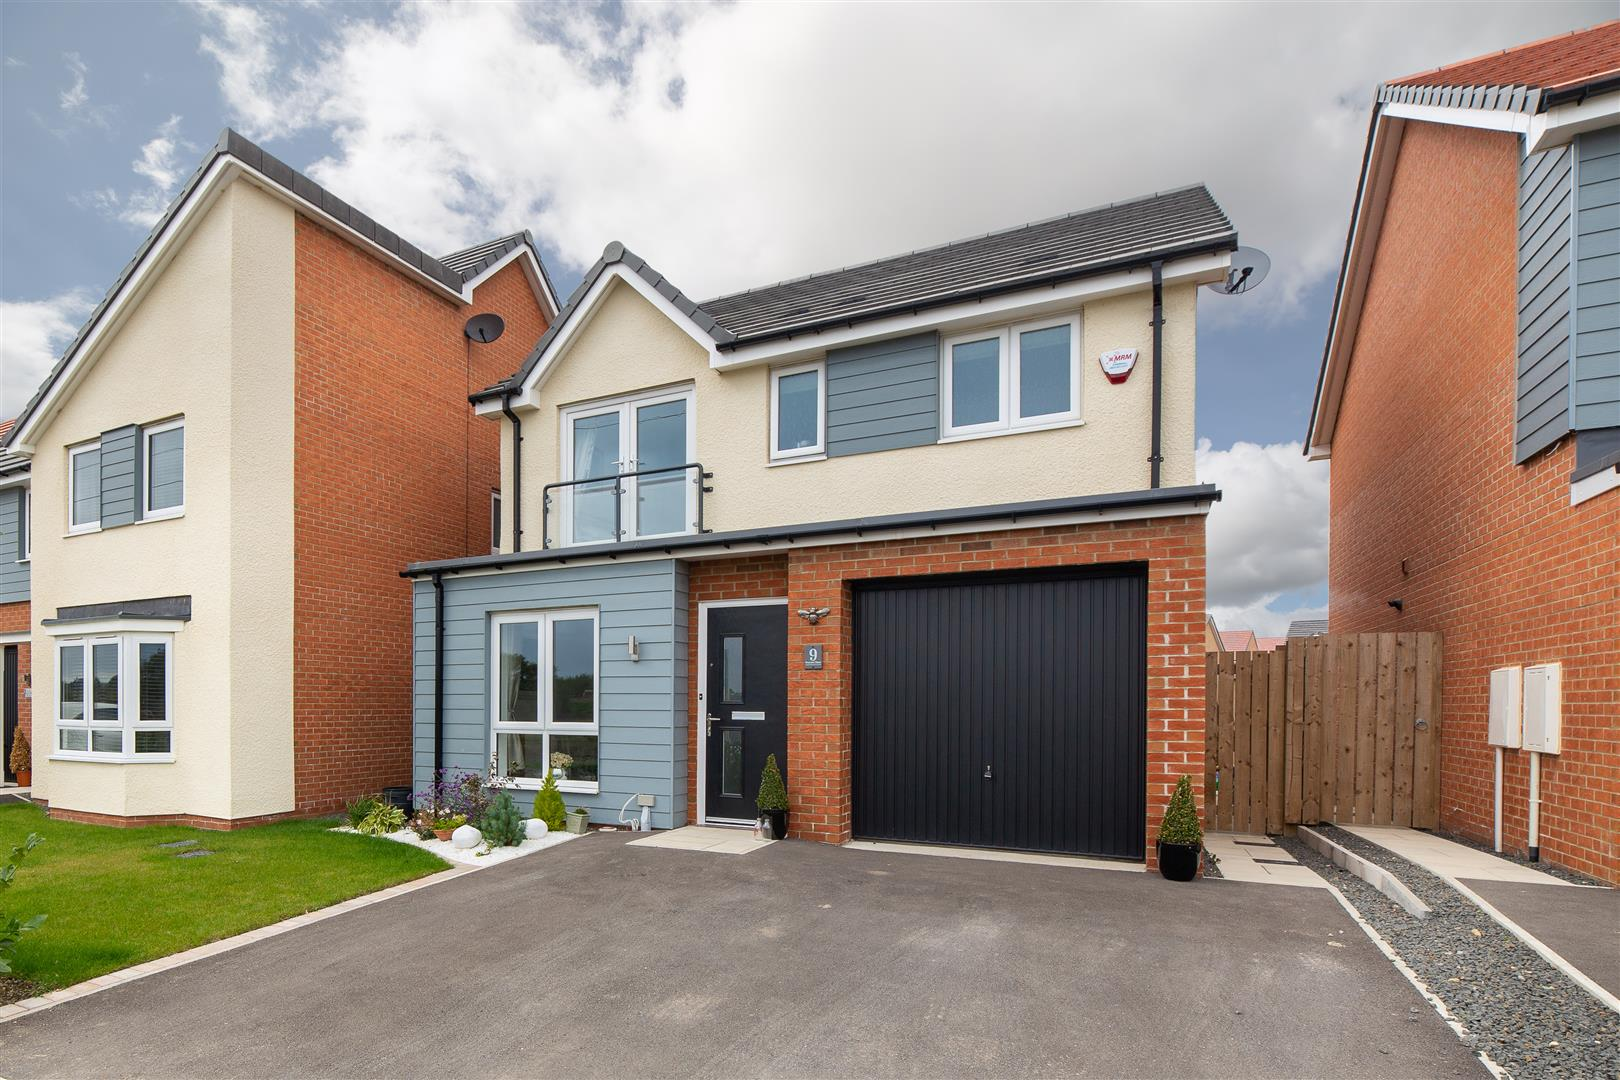 3 bed detached house for sale in Newcastle Upon Tyne, NE13 9EF, NE13